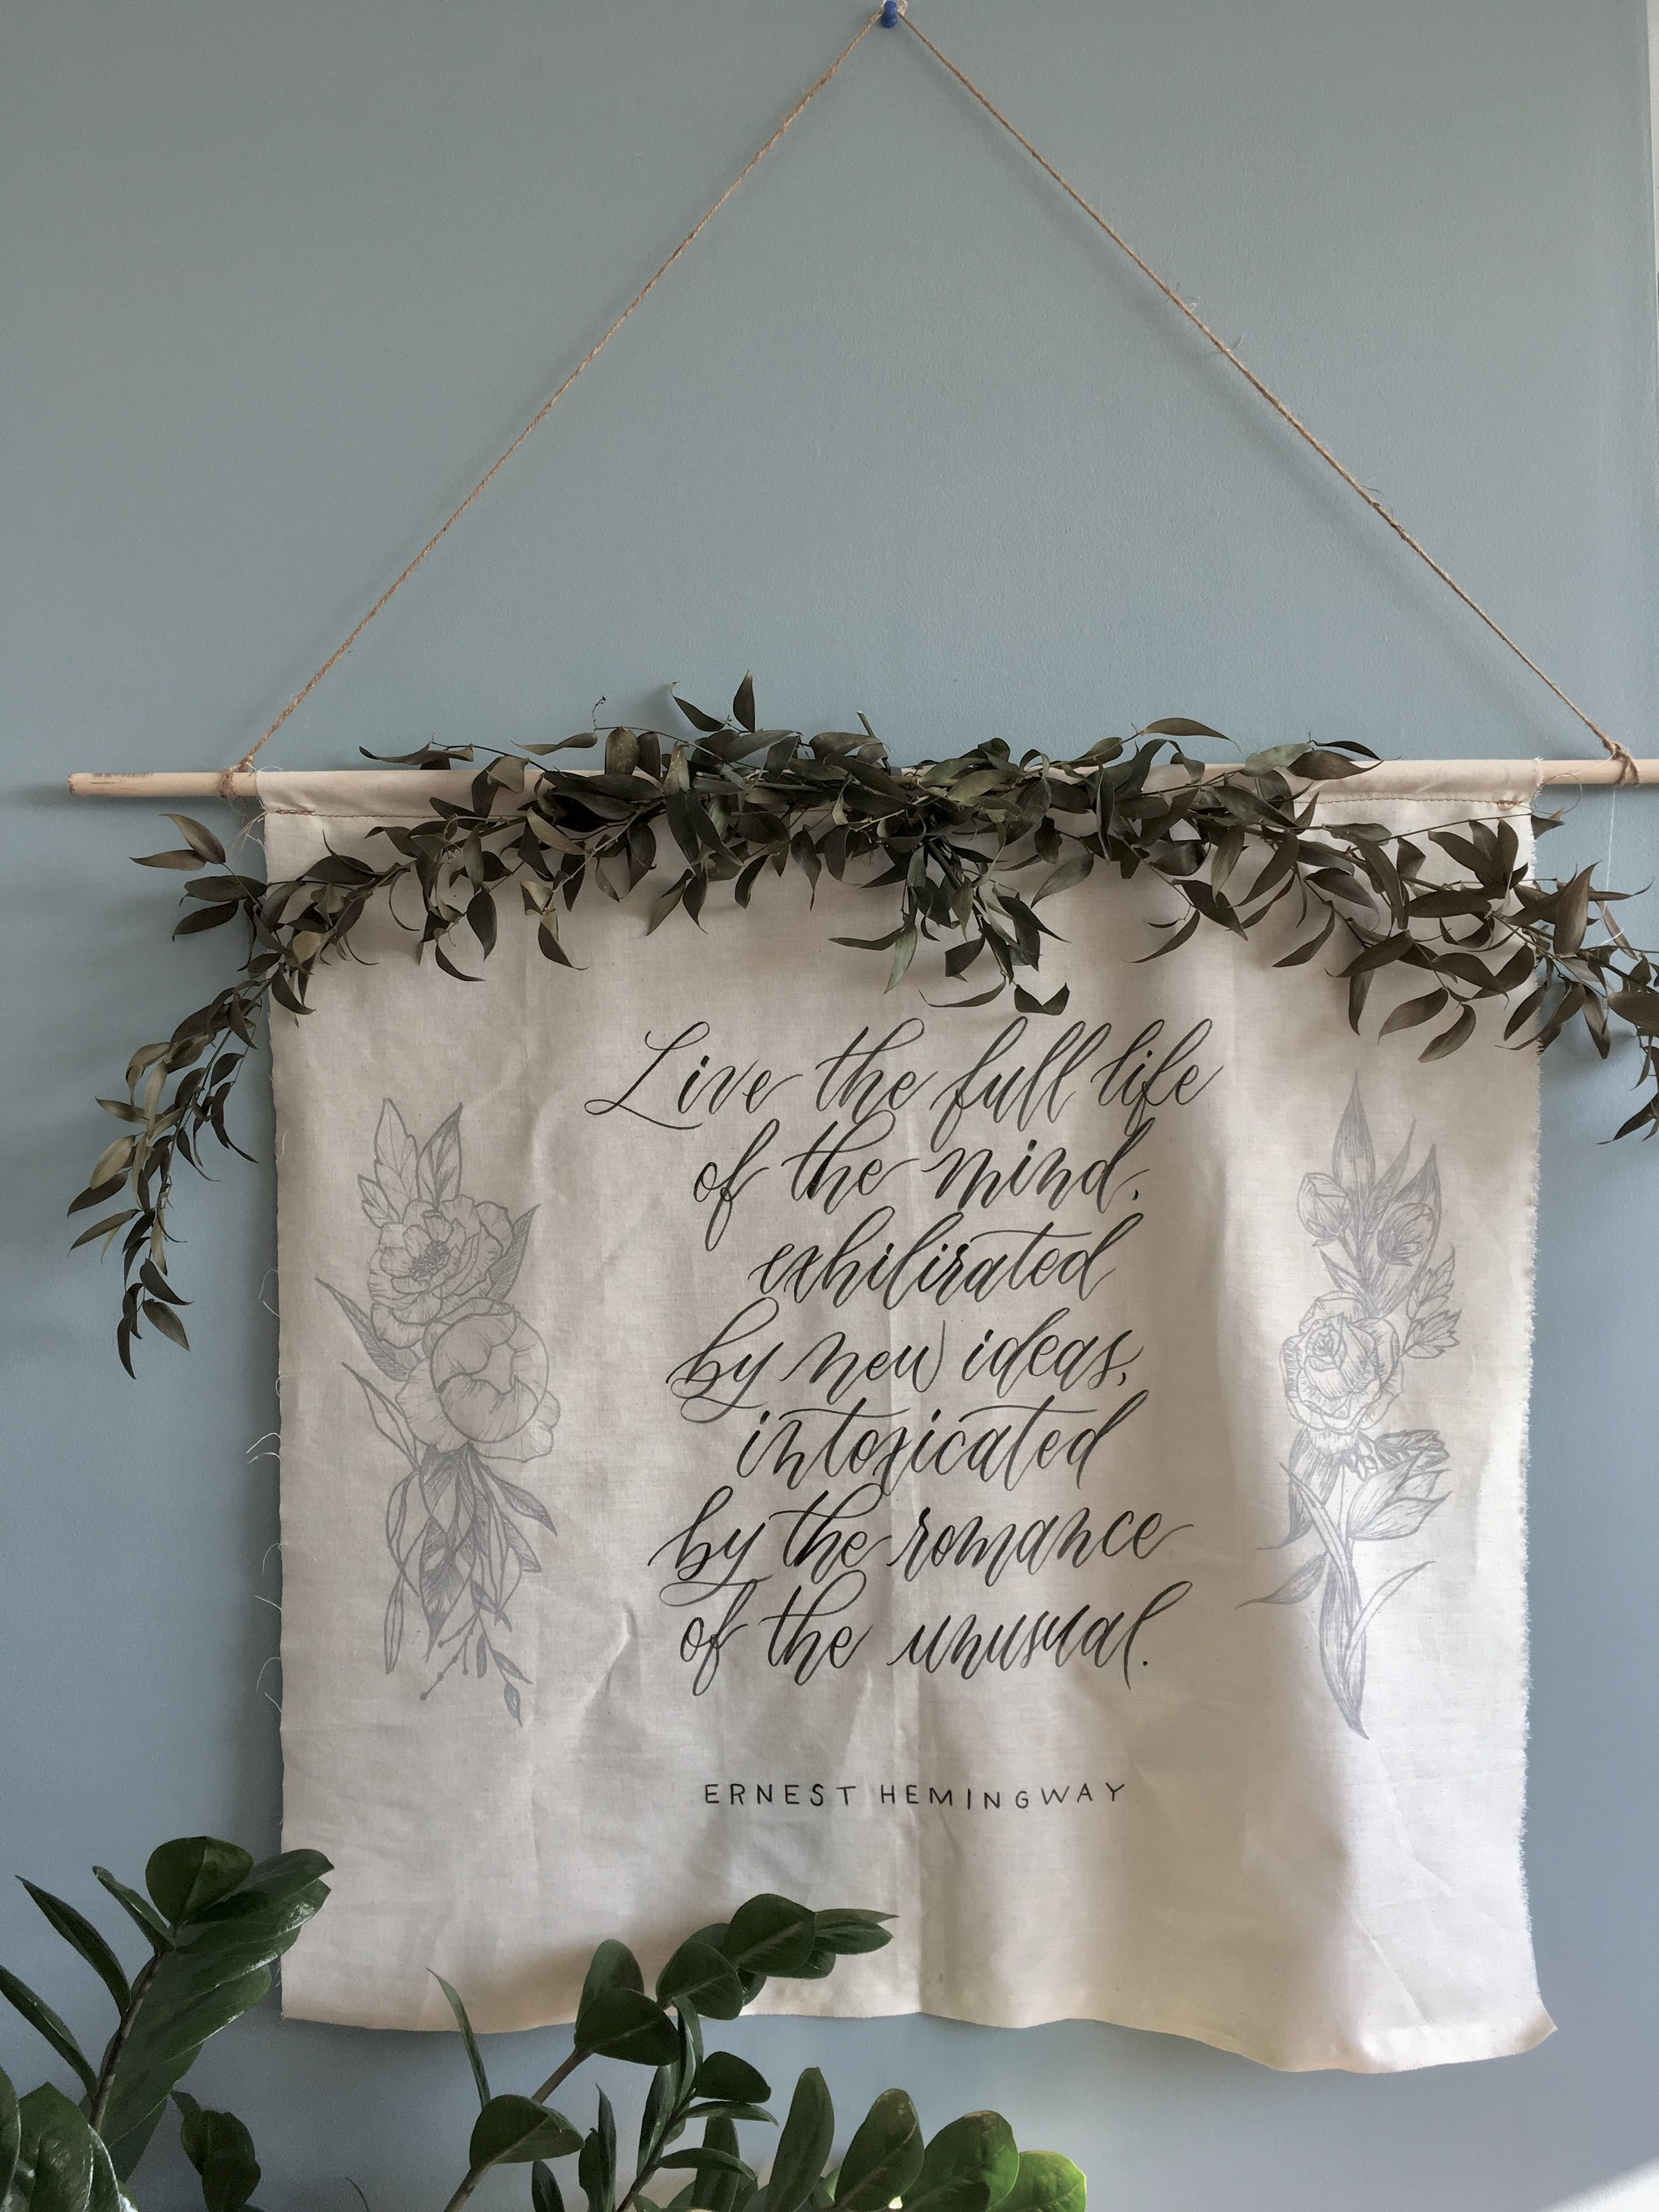 Banners - Cut, designed and calligraphed for a soft and organic vibe for your photographs or in your home.